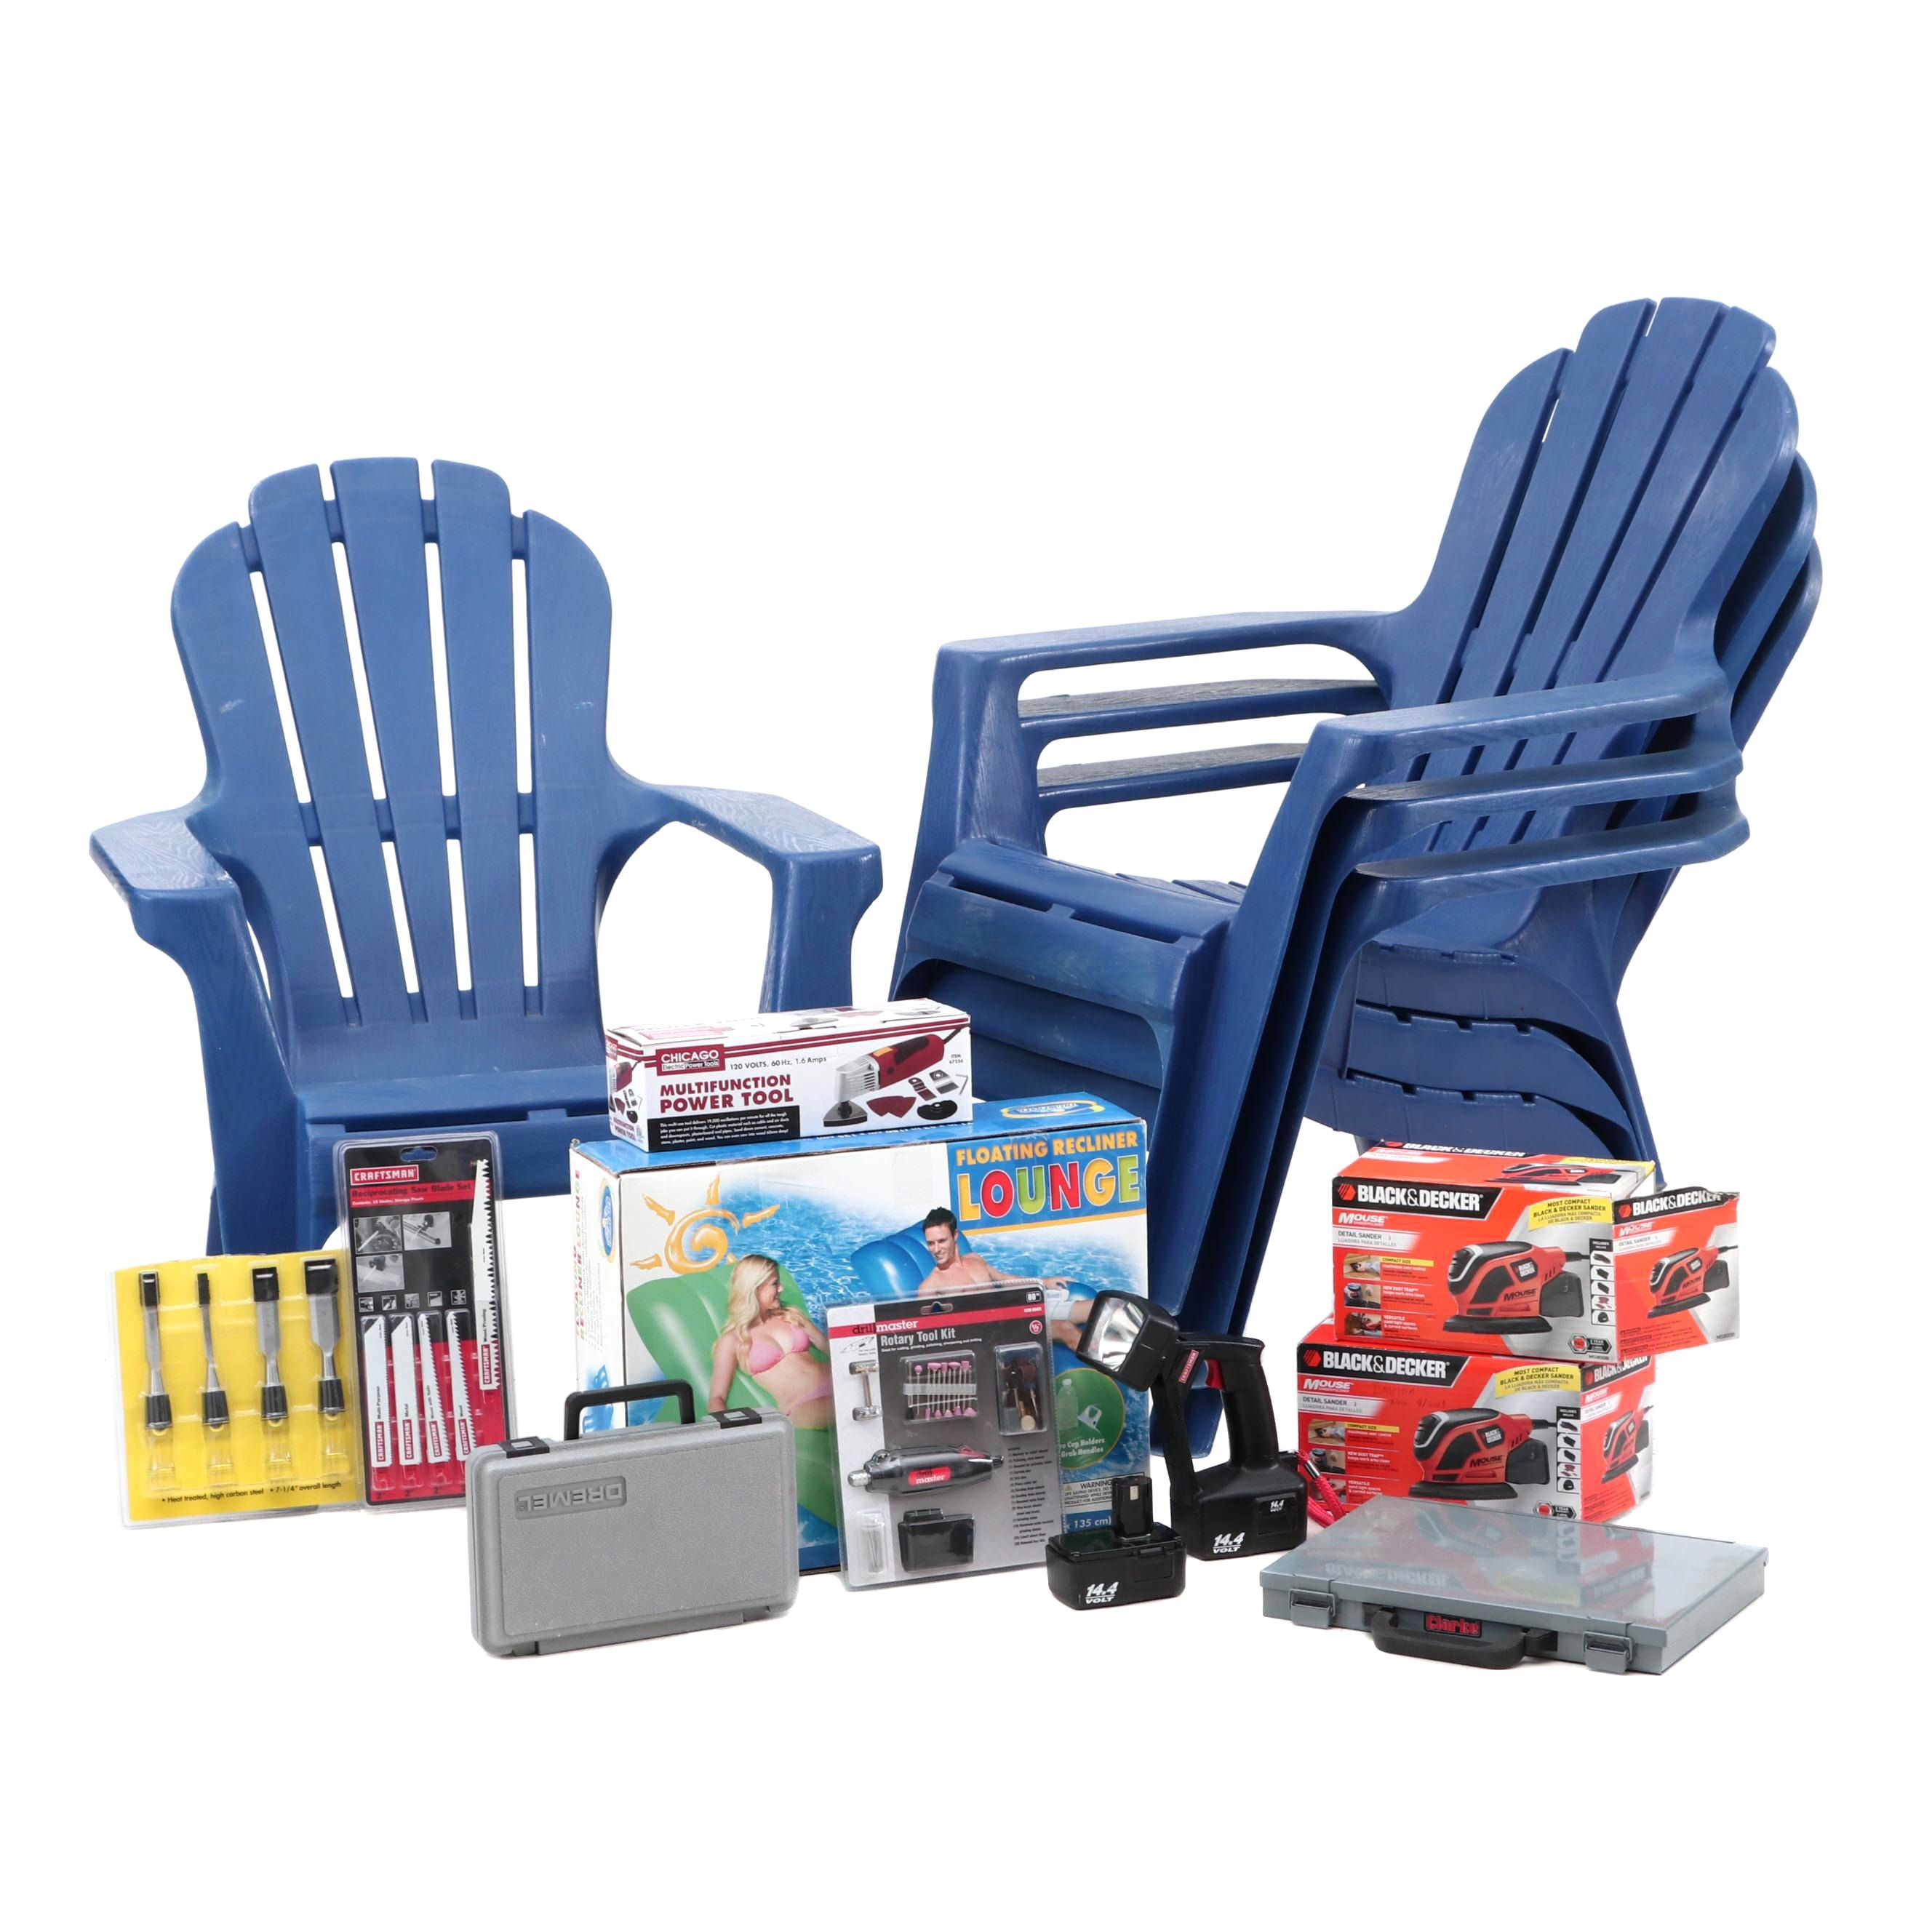 Plastic Adironack Chairs, Pool Float and Assorted Tools Including Black & Decker